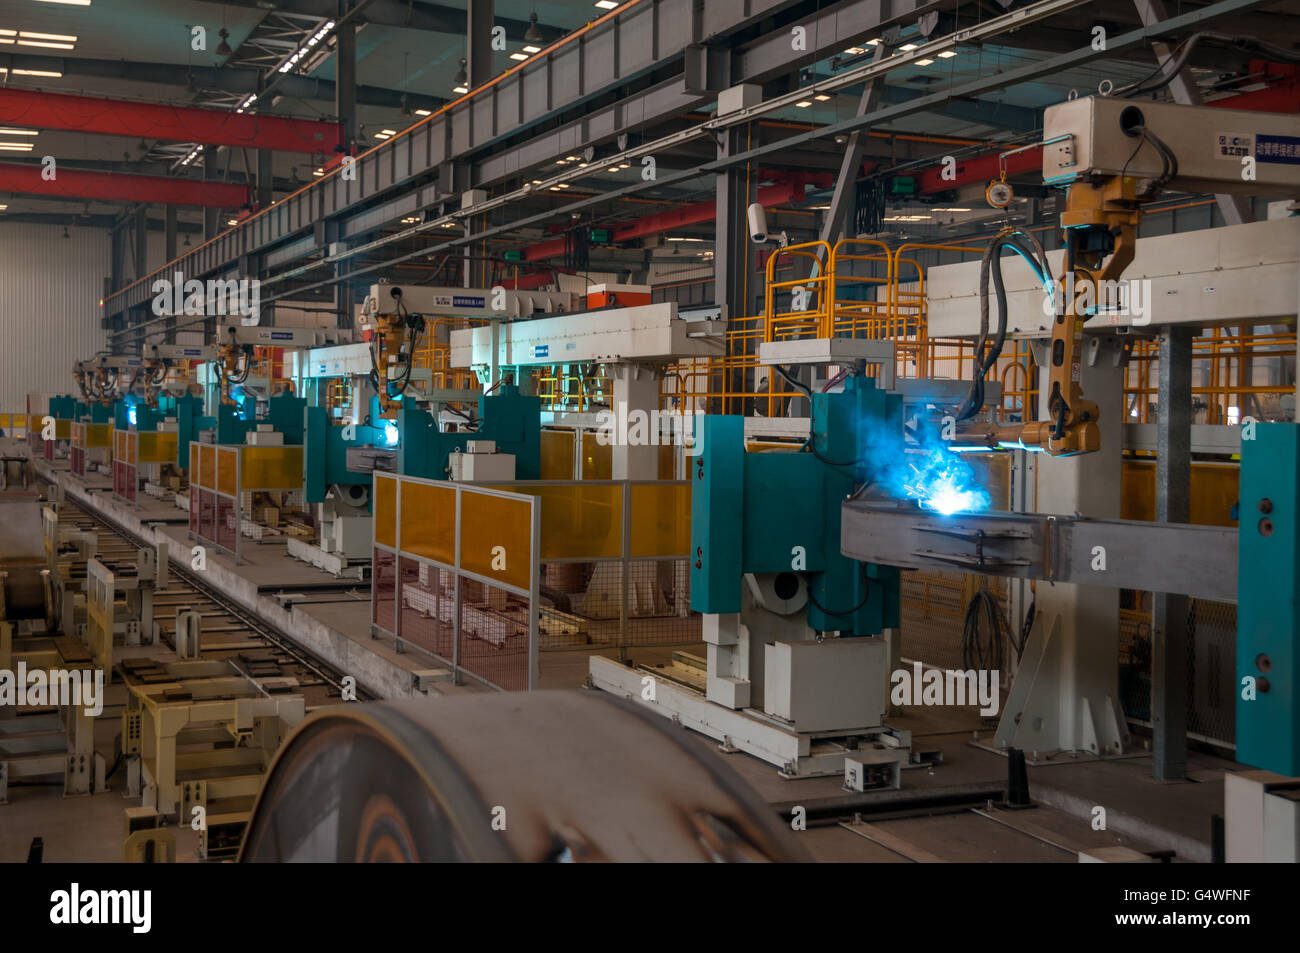 A line or robot welders in operation in the XCMG excavator factory in Xuzhou, China. - Stock Image